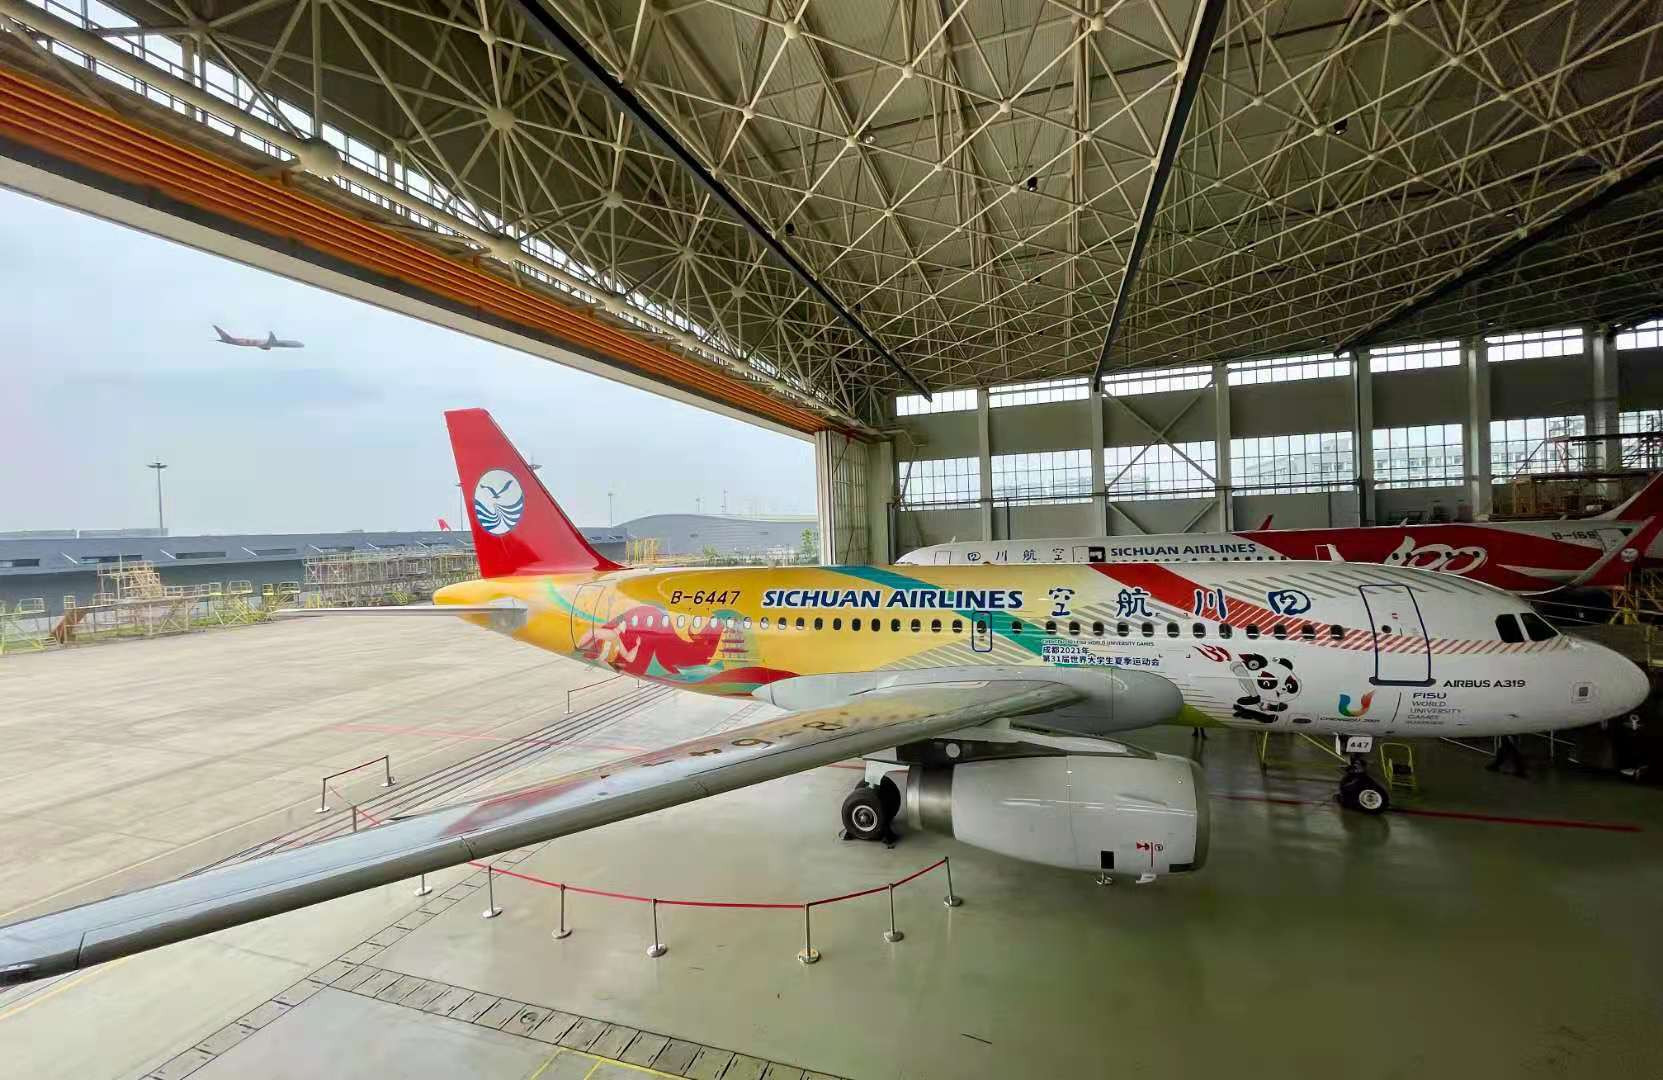 Sichuan Airlines unveils jet dedicated to Chengdu 2021